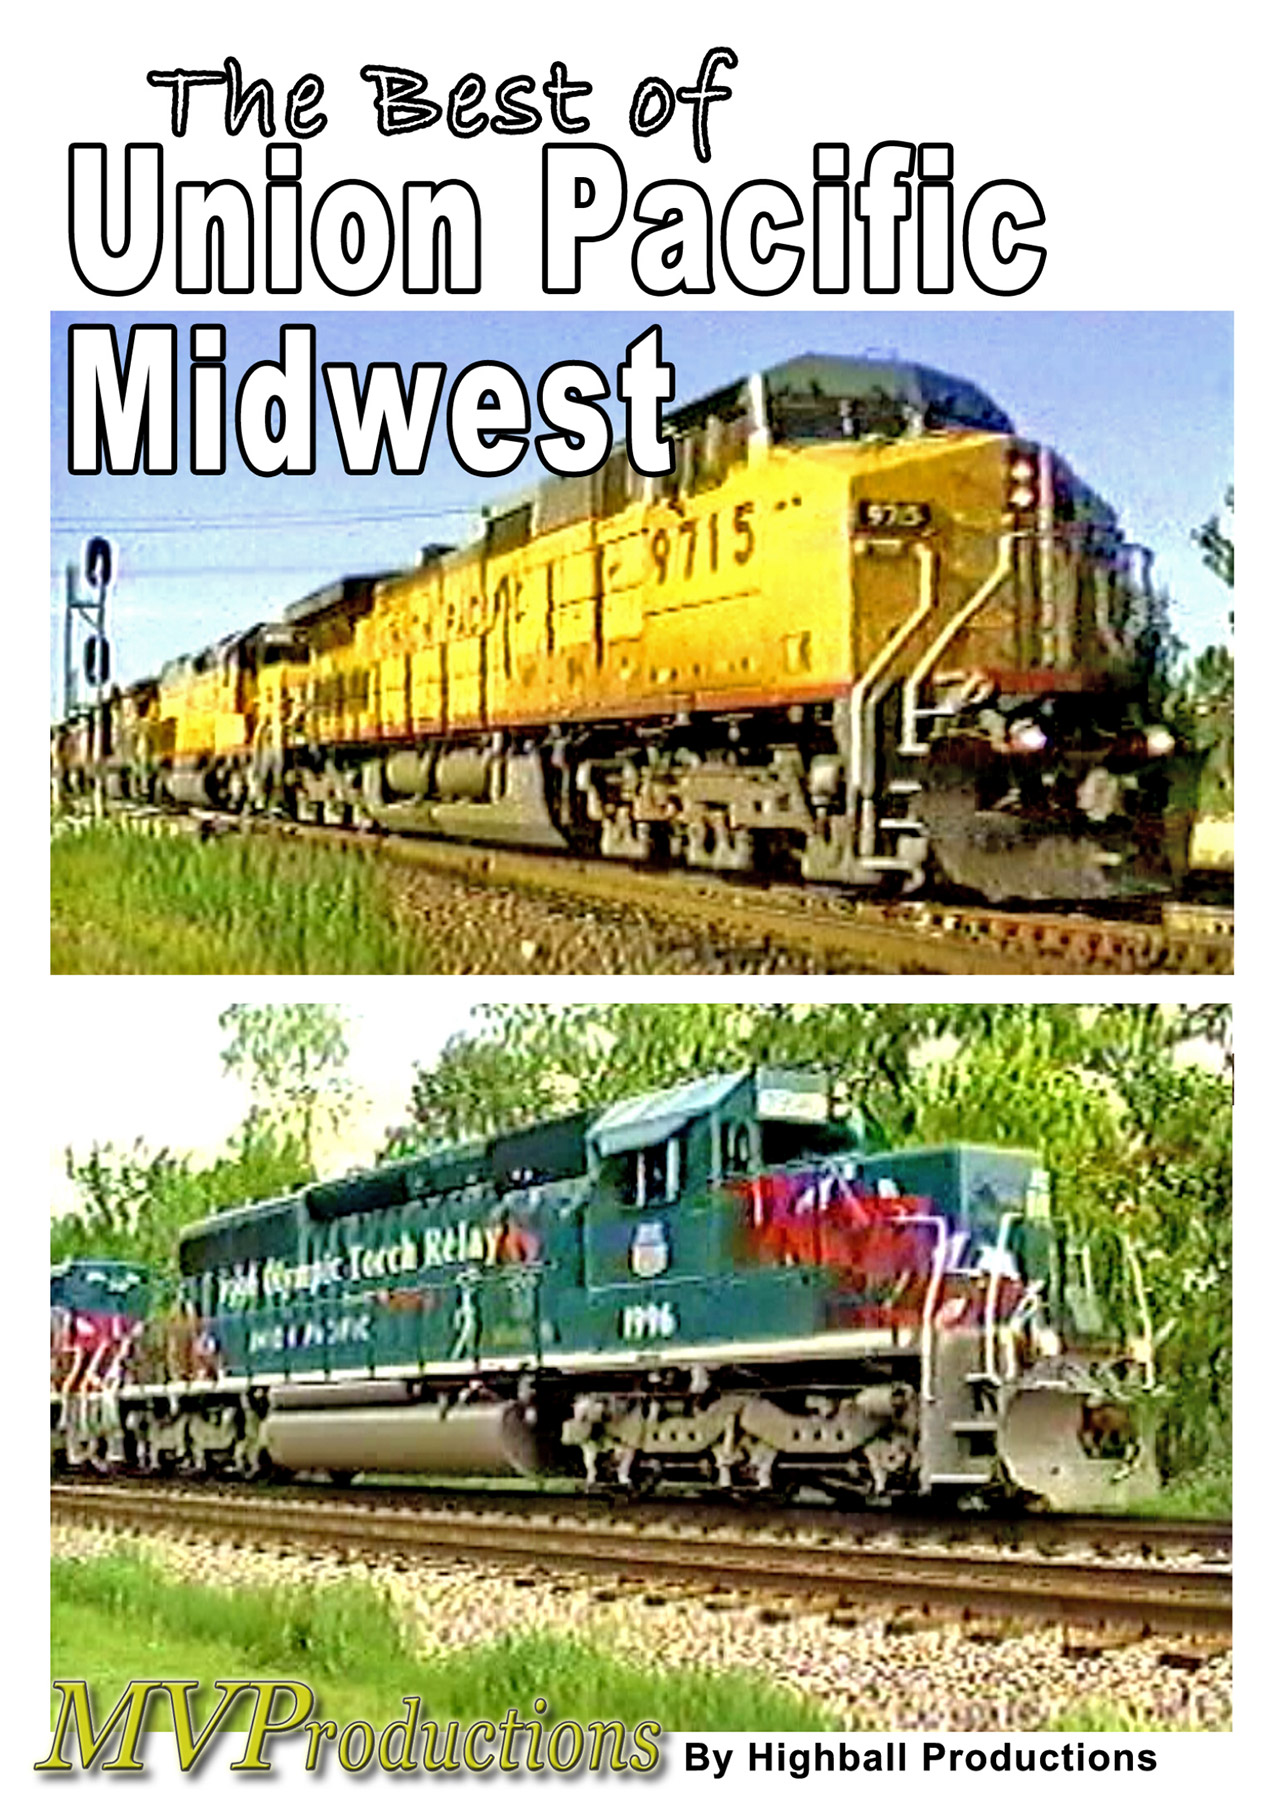 Best of Union Pacific - Midwest Midwest Video Productions MVBUP 601577880288